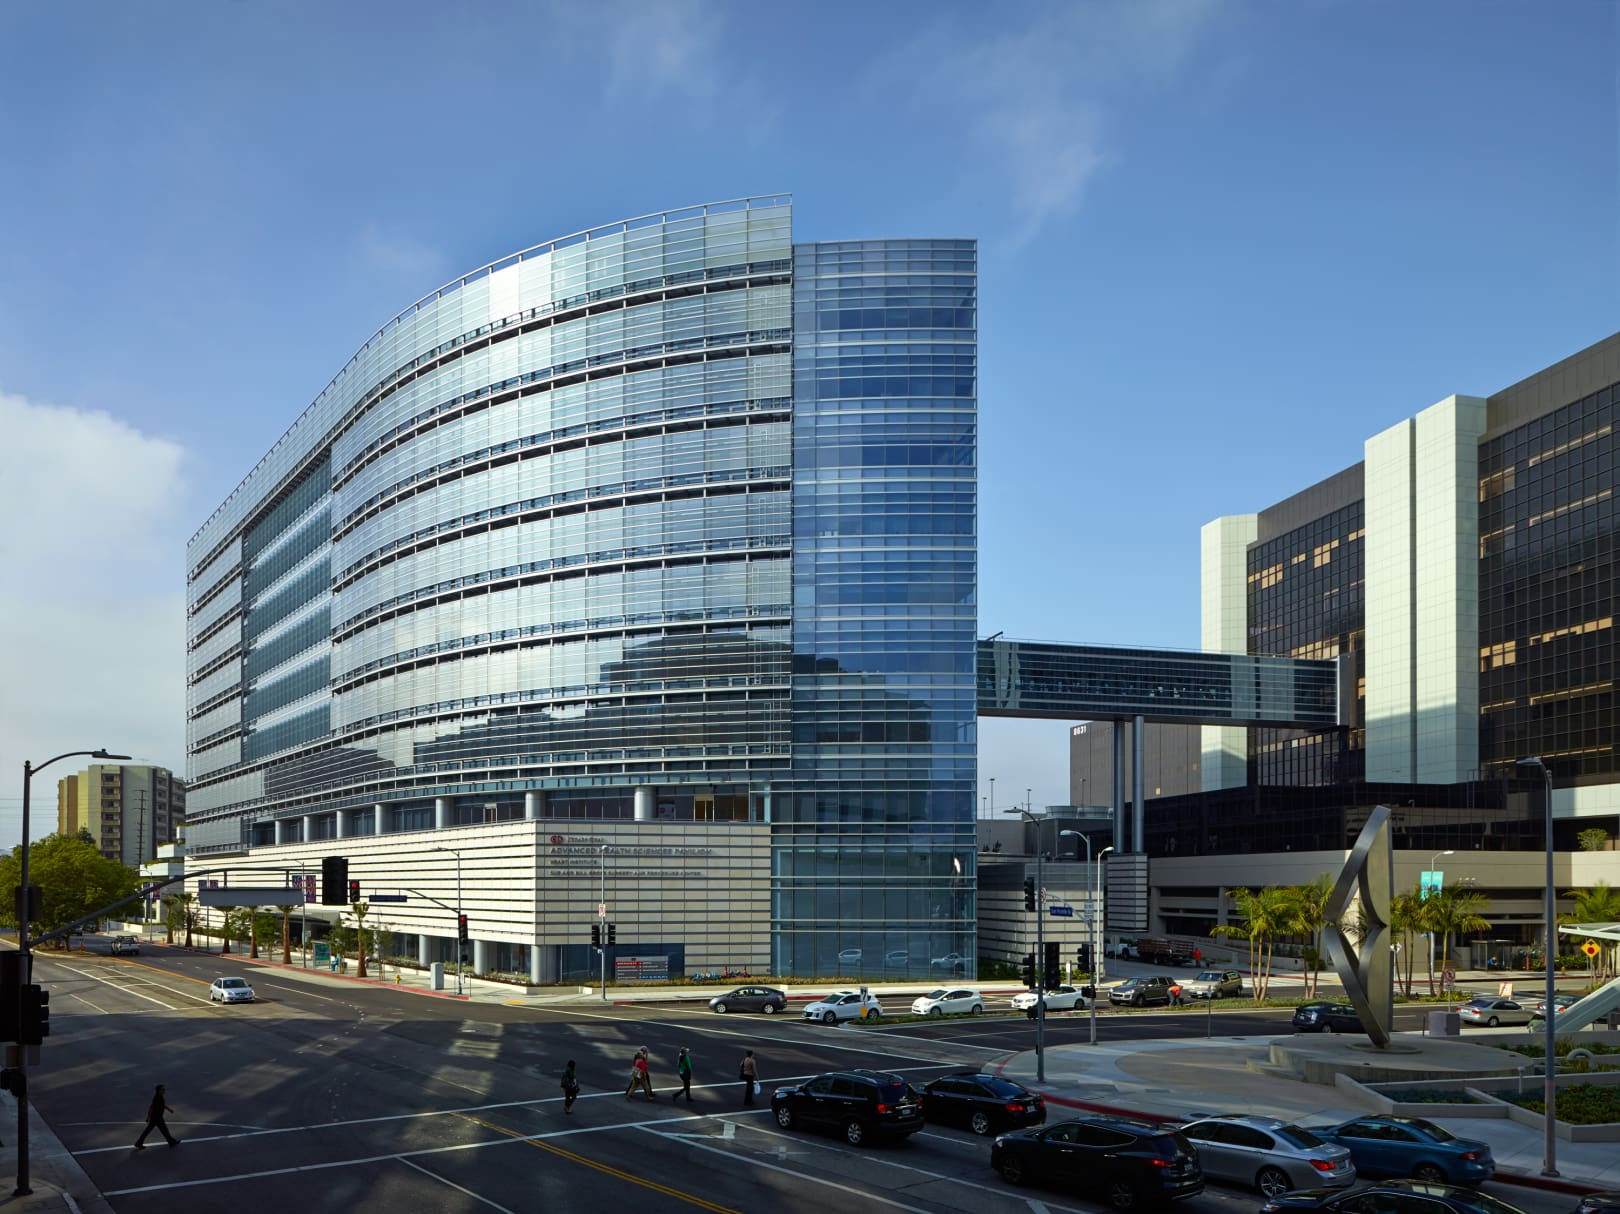 Cedars Sinai Advanced Health Sciences Pavilion building